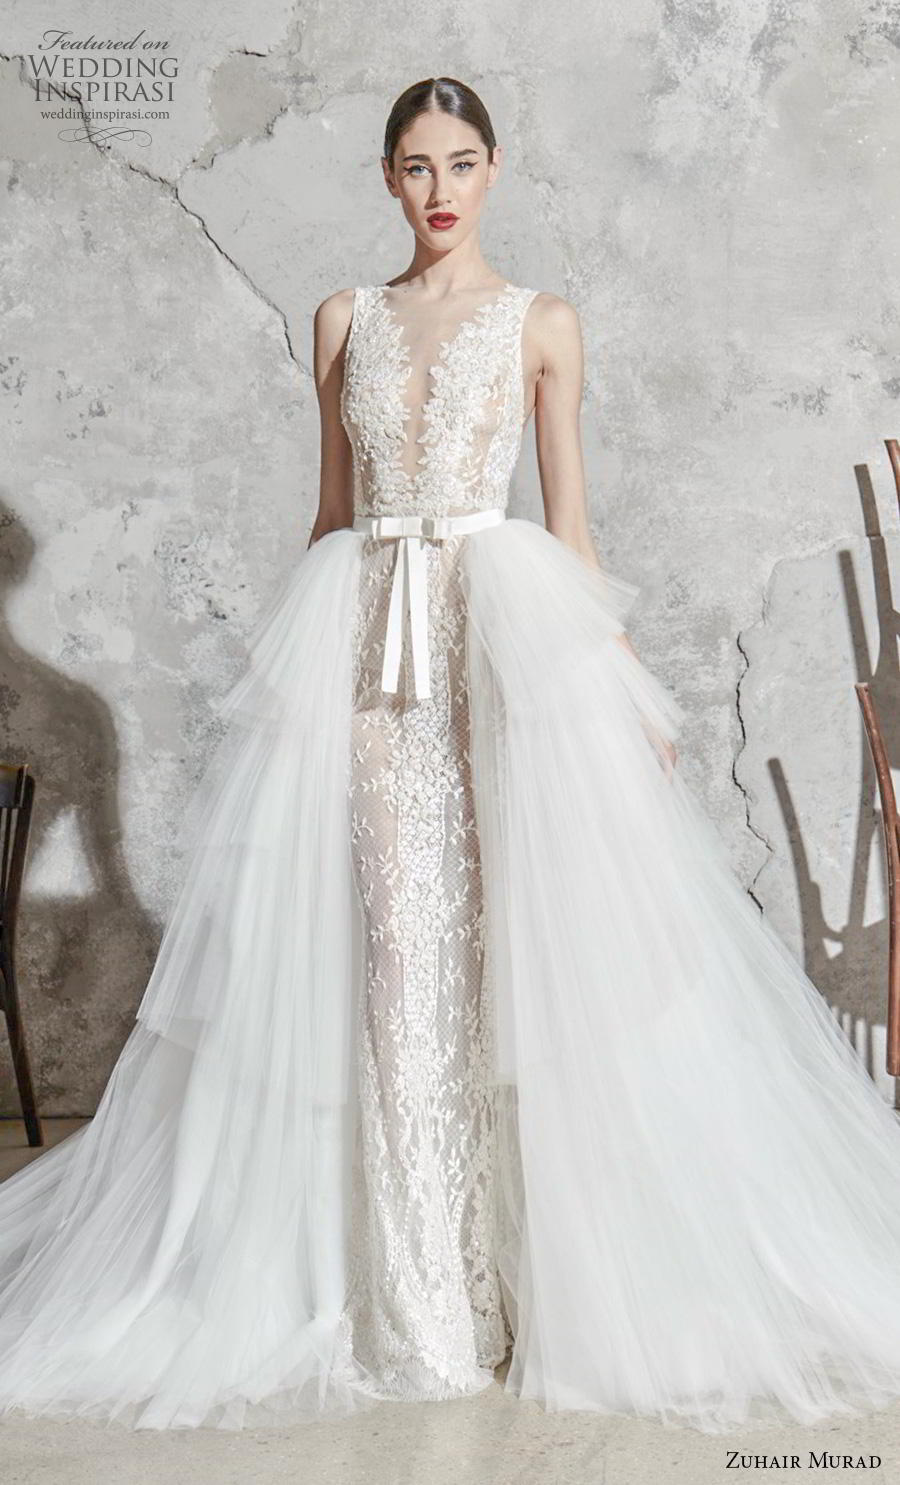 zuhair murad spring 2020 bridal sleeveless with strap illiusion jewel v neck full embellishment elegant fit and flare sheath wedding dress a  line overskirt chapel train (10) mv